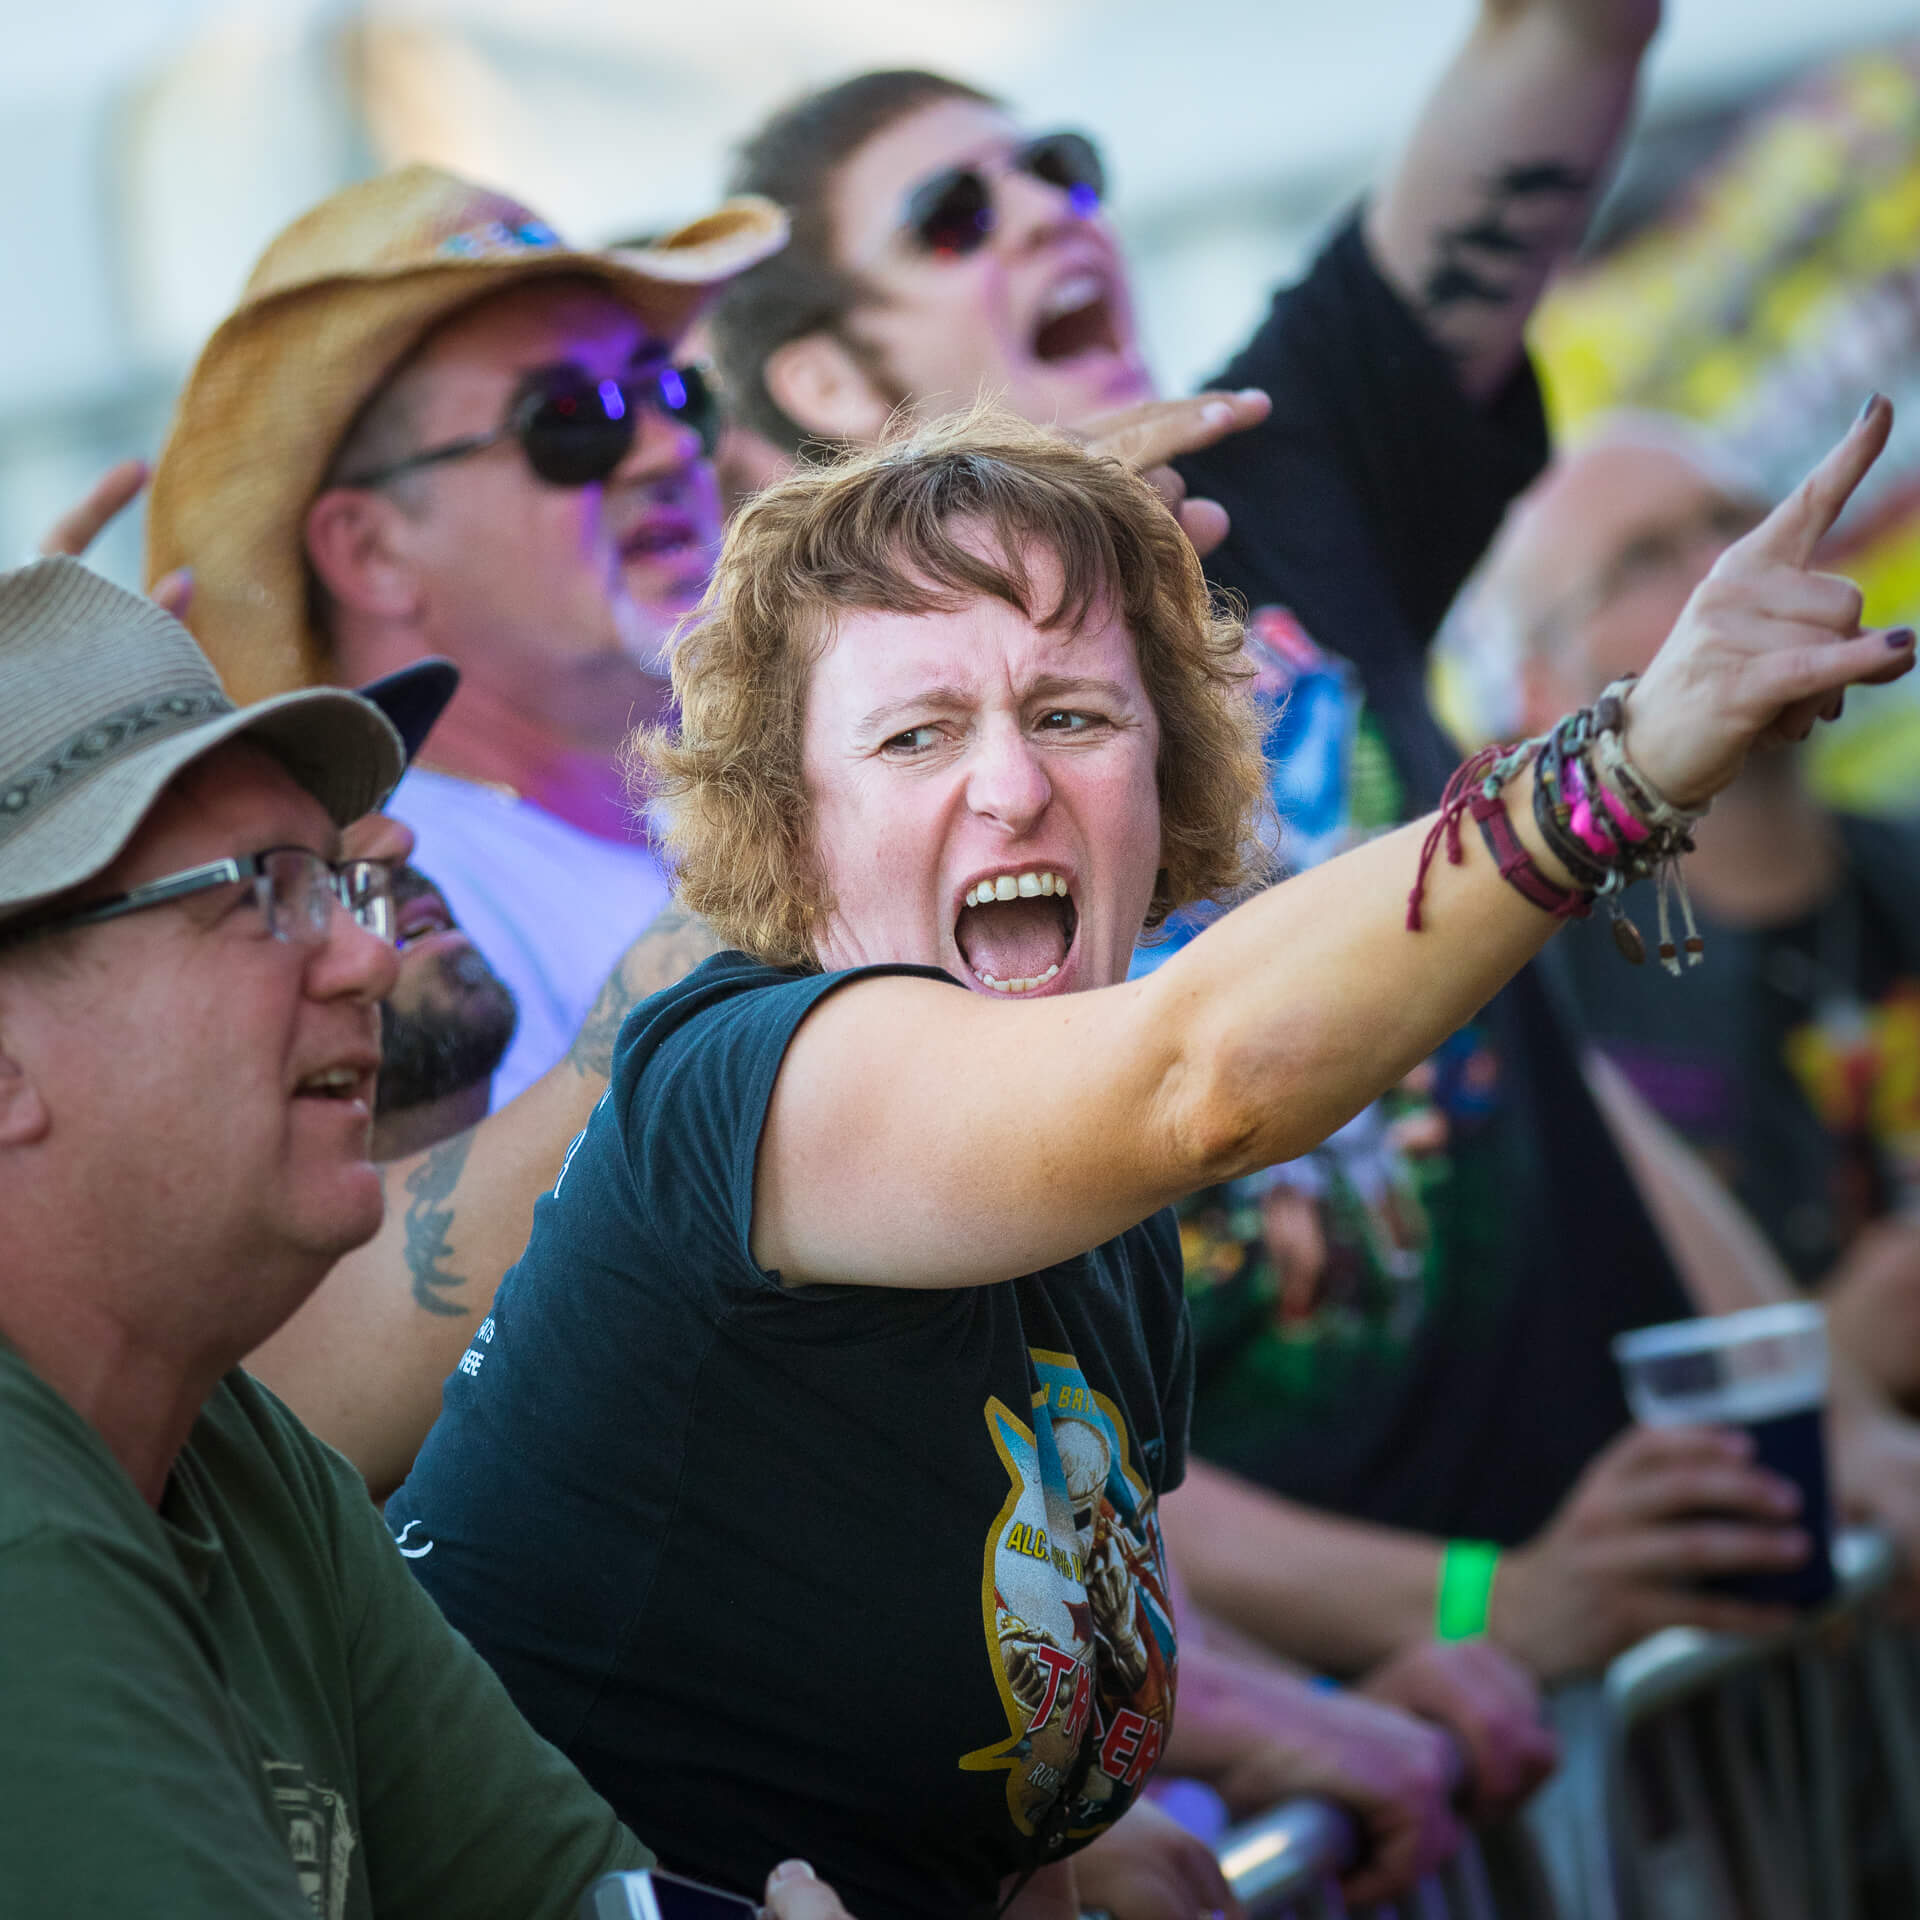 A chest up colour image of my good friend Vicky at the Drunken Monkey Rock Festival 2019. She is seen here at the barrier as she gets in the mood. She is open mouthed (probably screaming) and she holds her right arm up giving the 'Horns' sign whilst looking to her right, where Dave, her husband, stands arms folded and leaning on the barrier watching the band on stage.